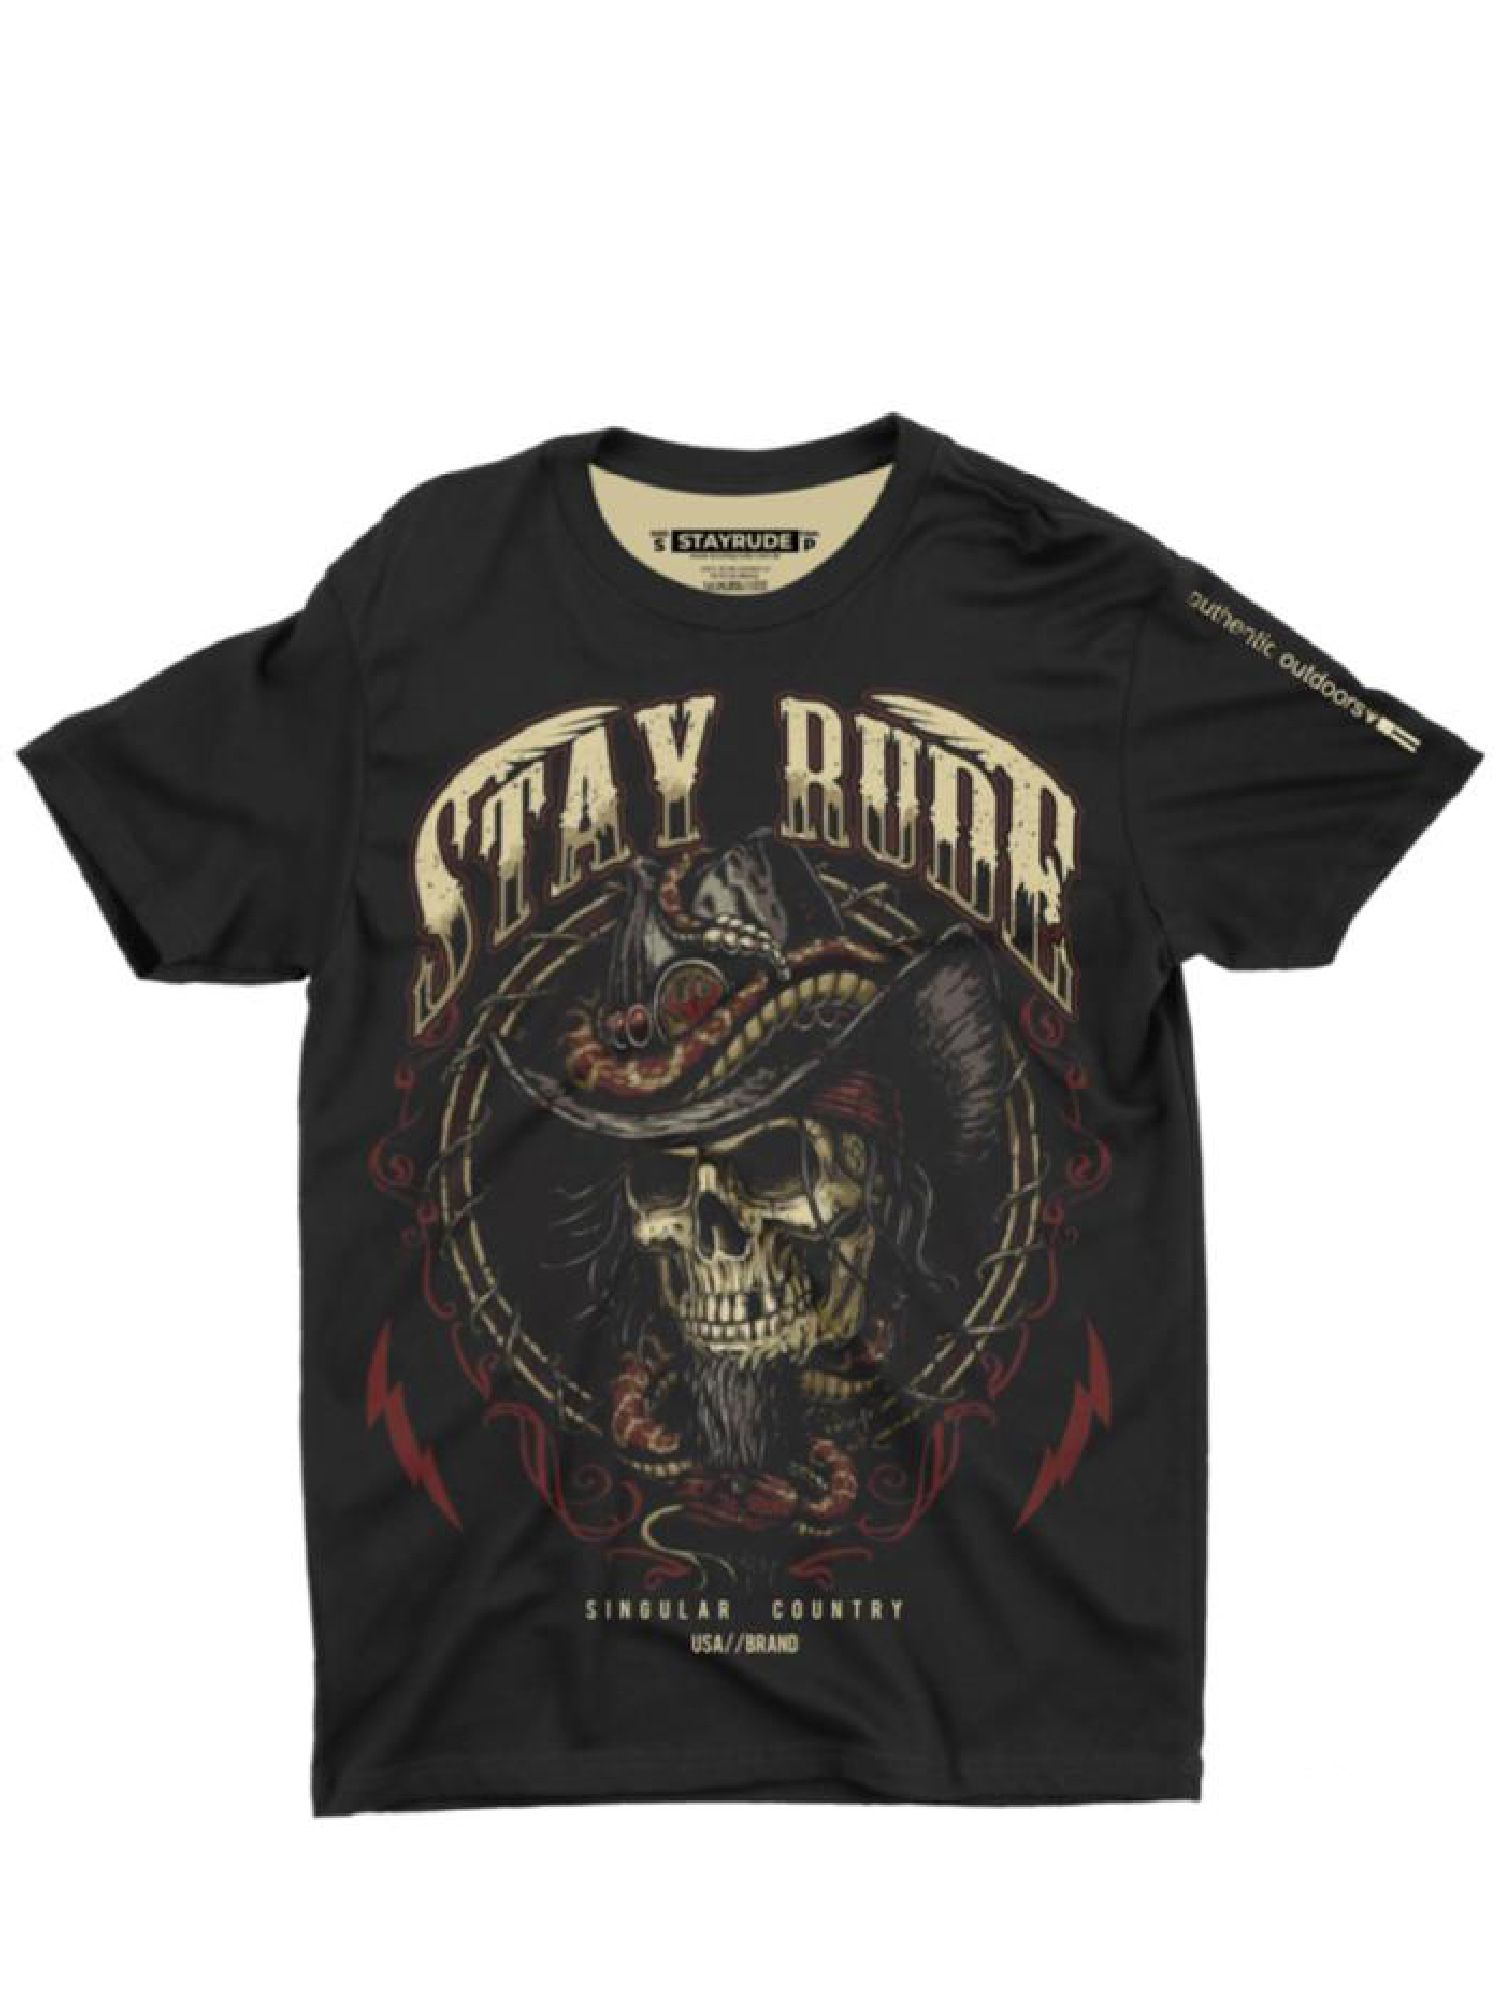 Camiseta Masculina Stay Rude Skull Country